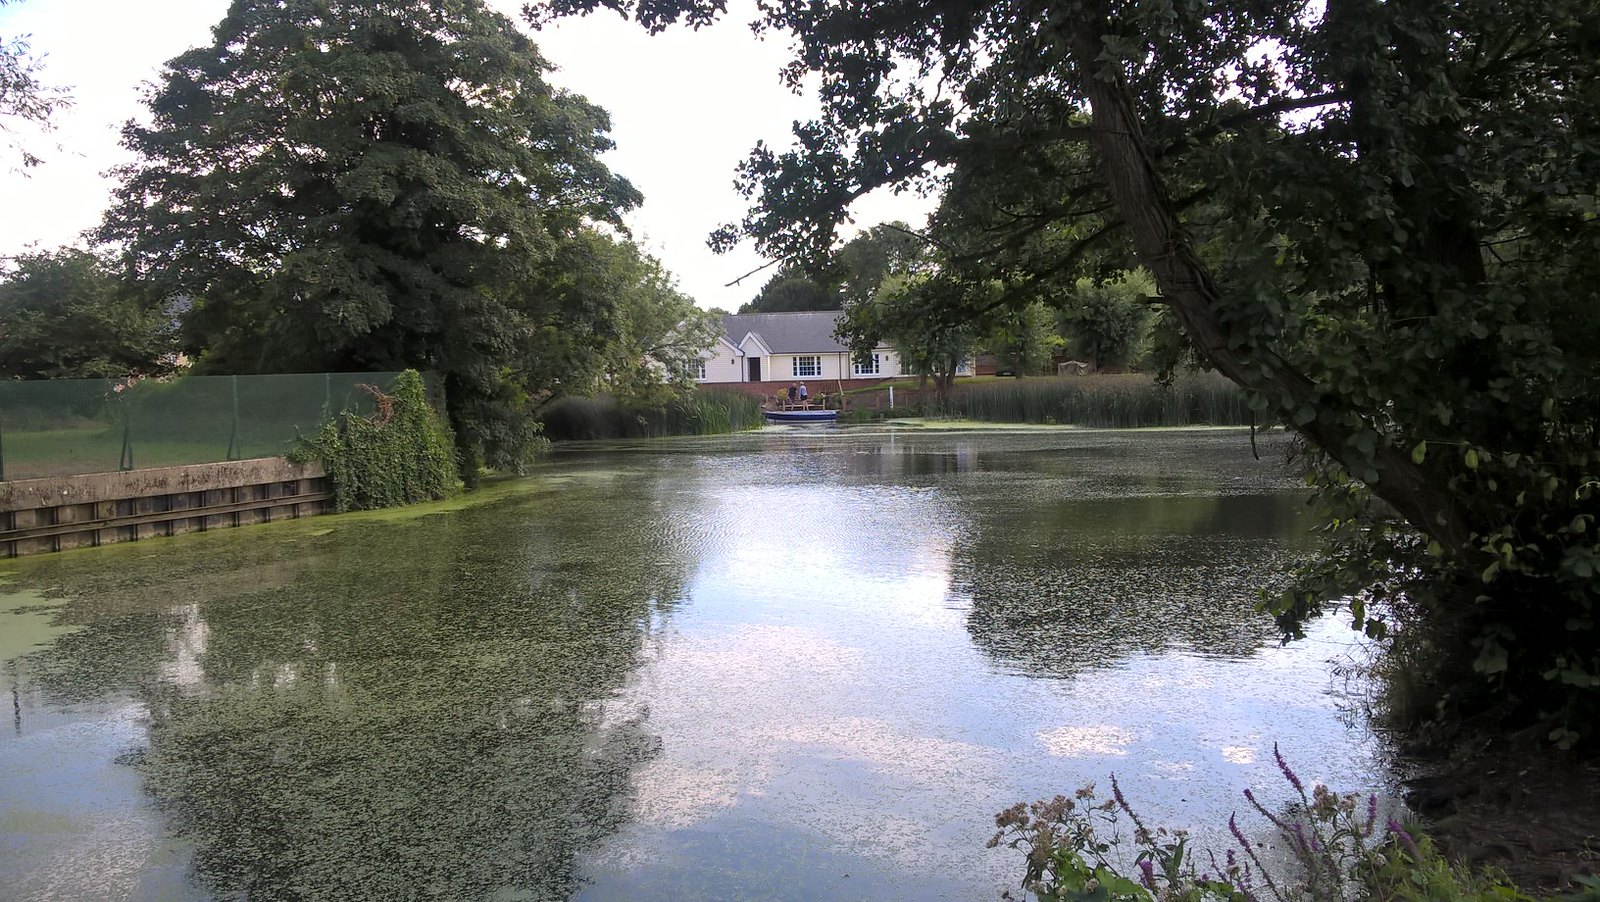 Near Dedham Lock in Constable Country